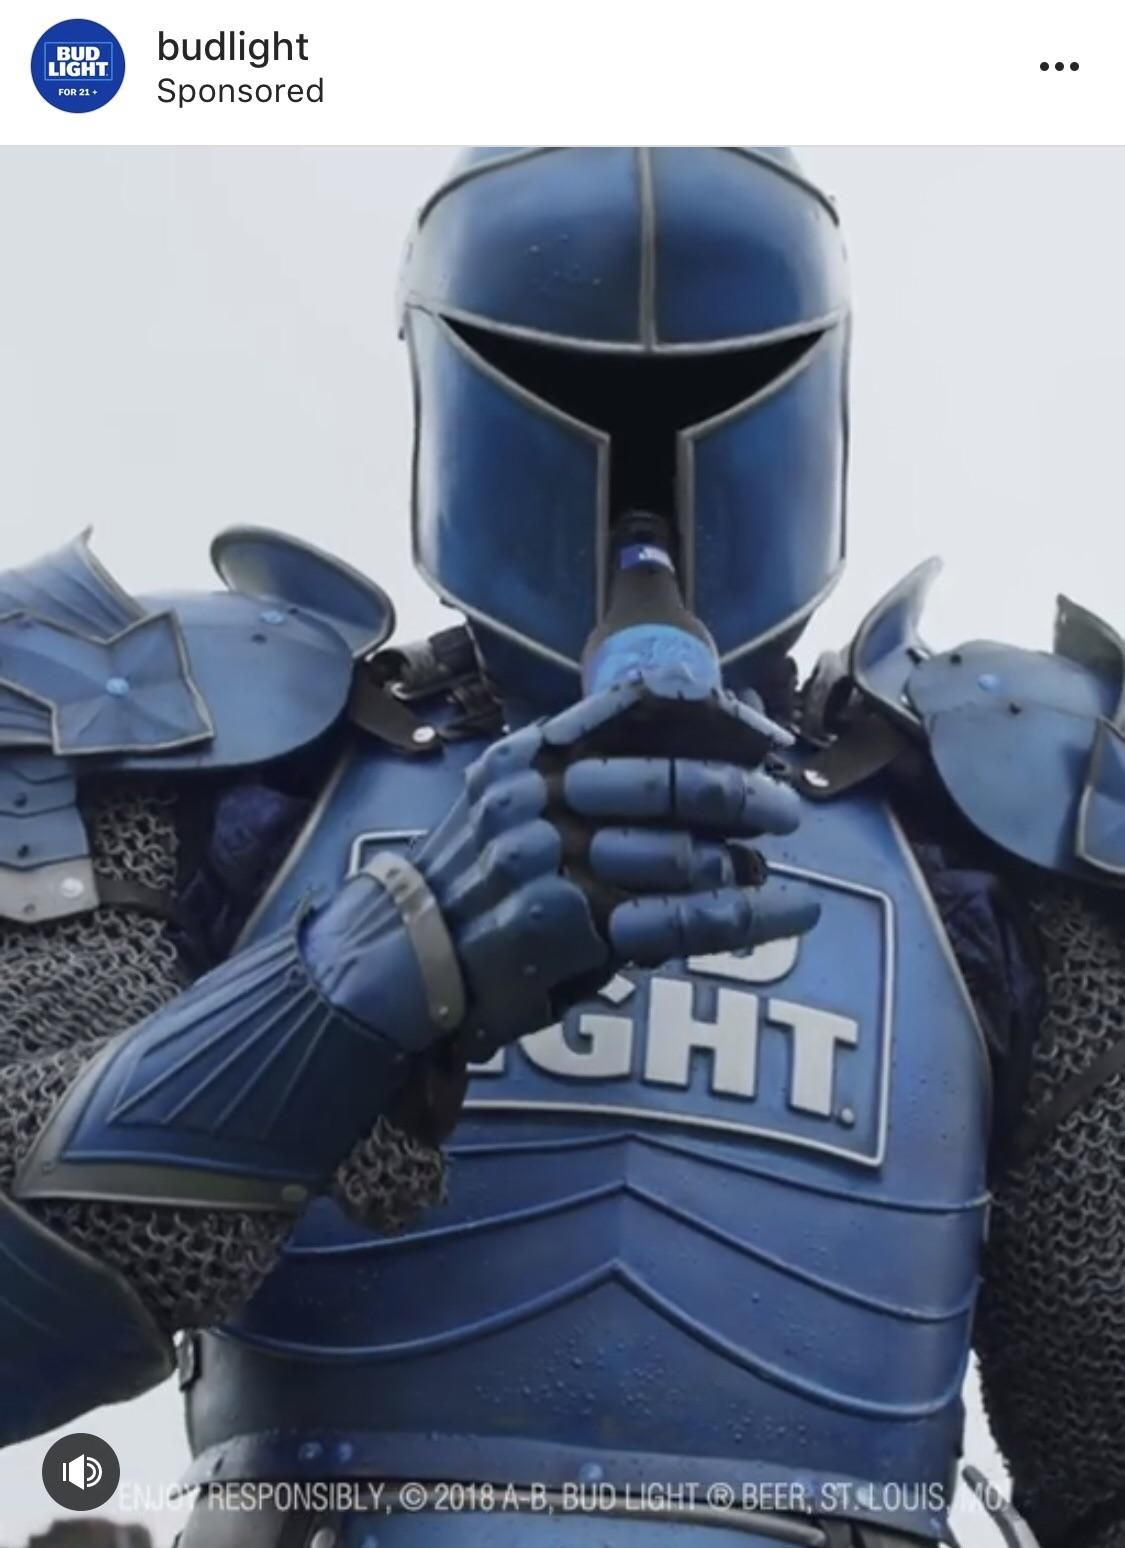 I Just Saw An Ad For Bud Light On Instagram And The Subject In It Looks Like Shovel Knight Knight Halloween Costume Knight Halloween Top Halloween Costumes